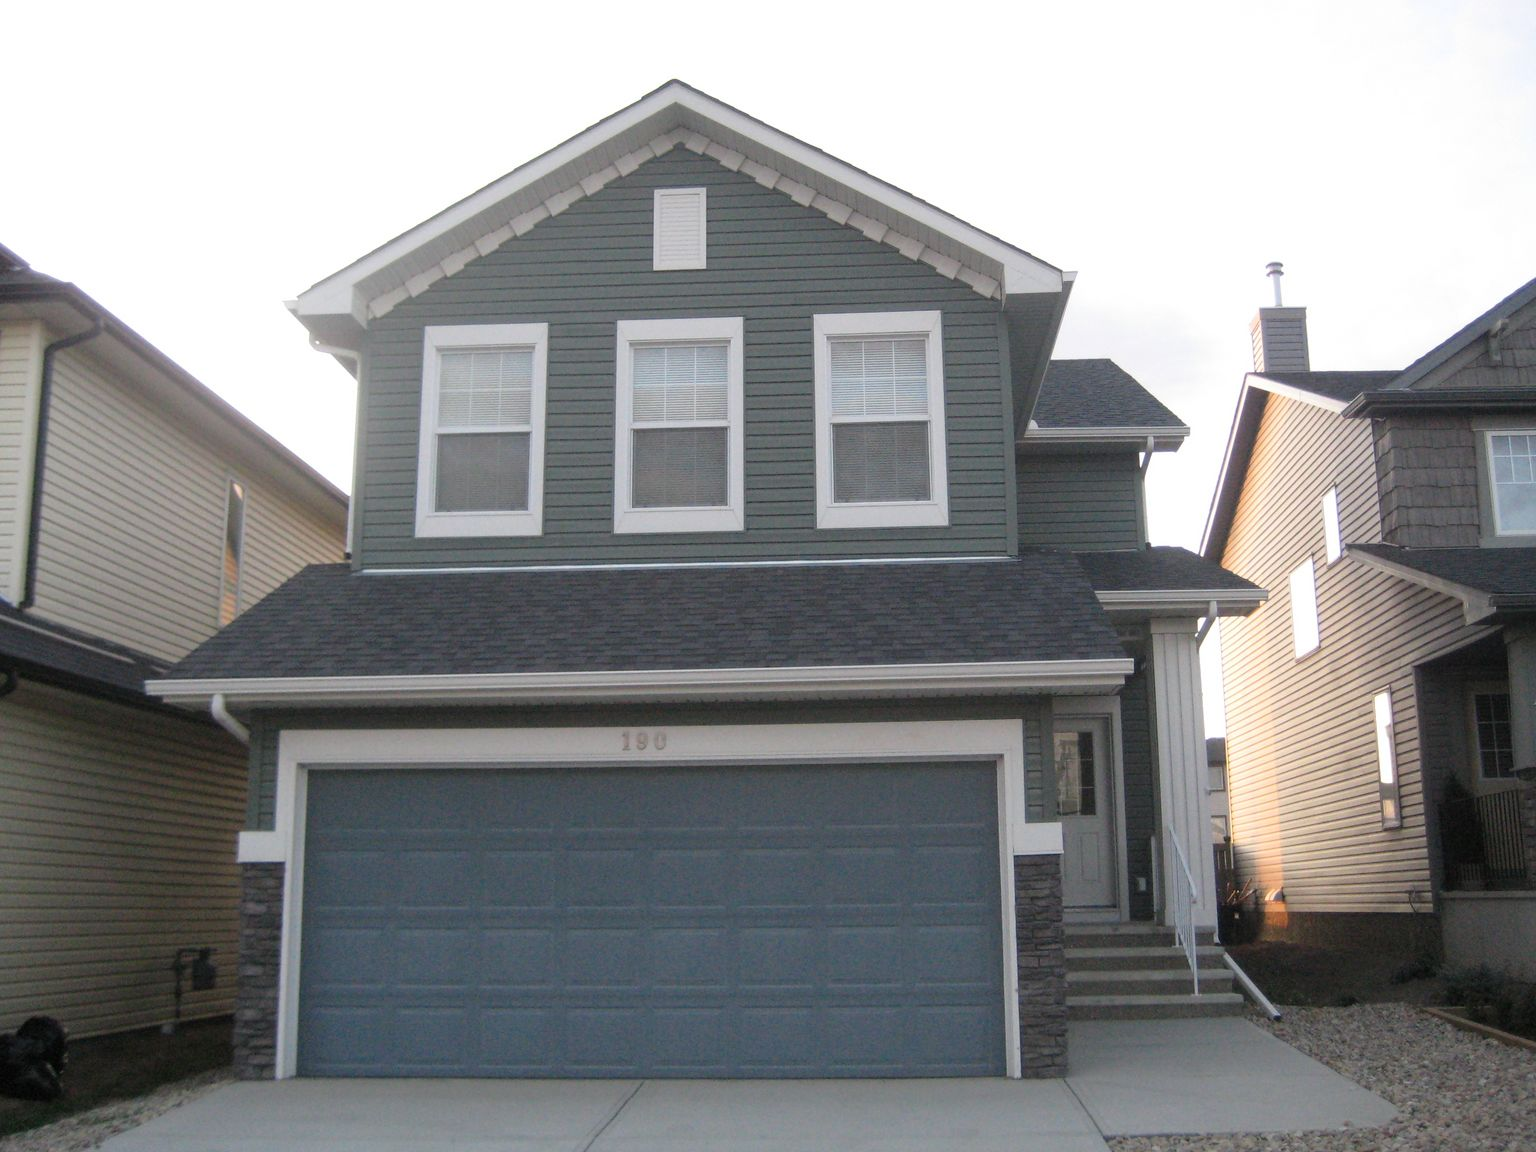 Nice 2 storey single family home with double garage located in Evanston!